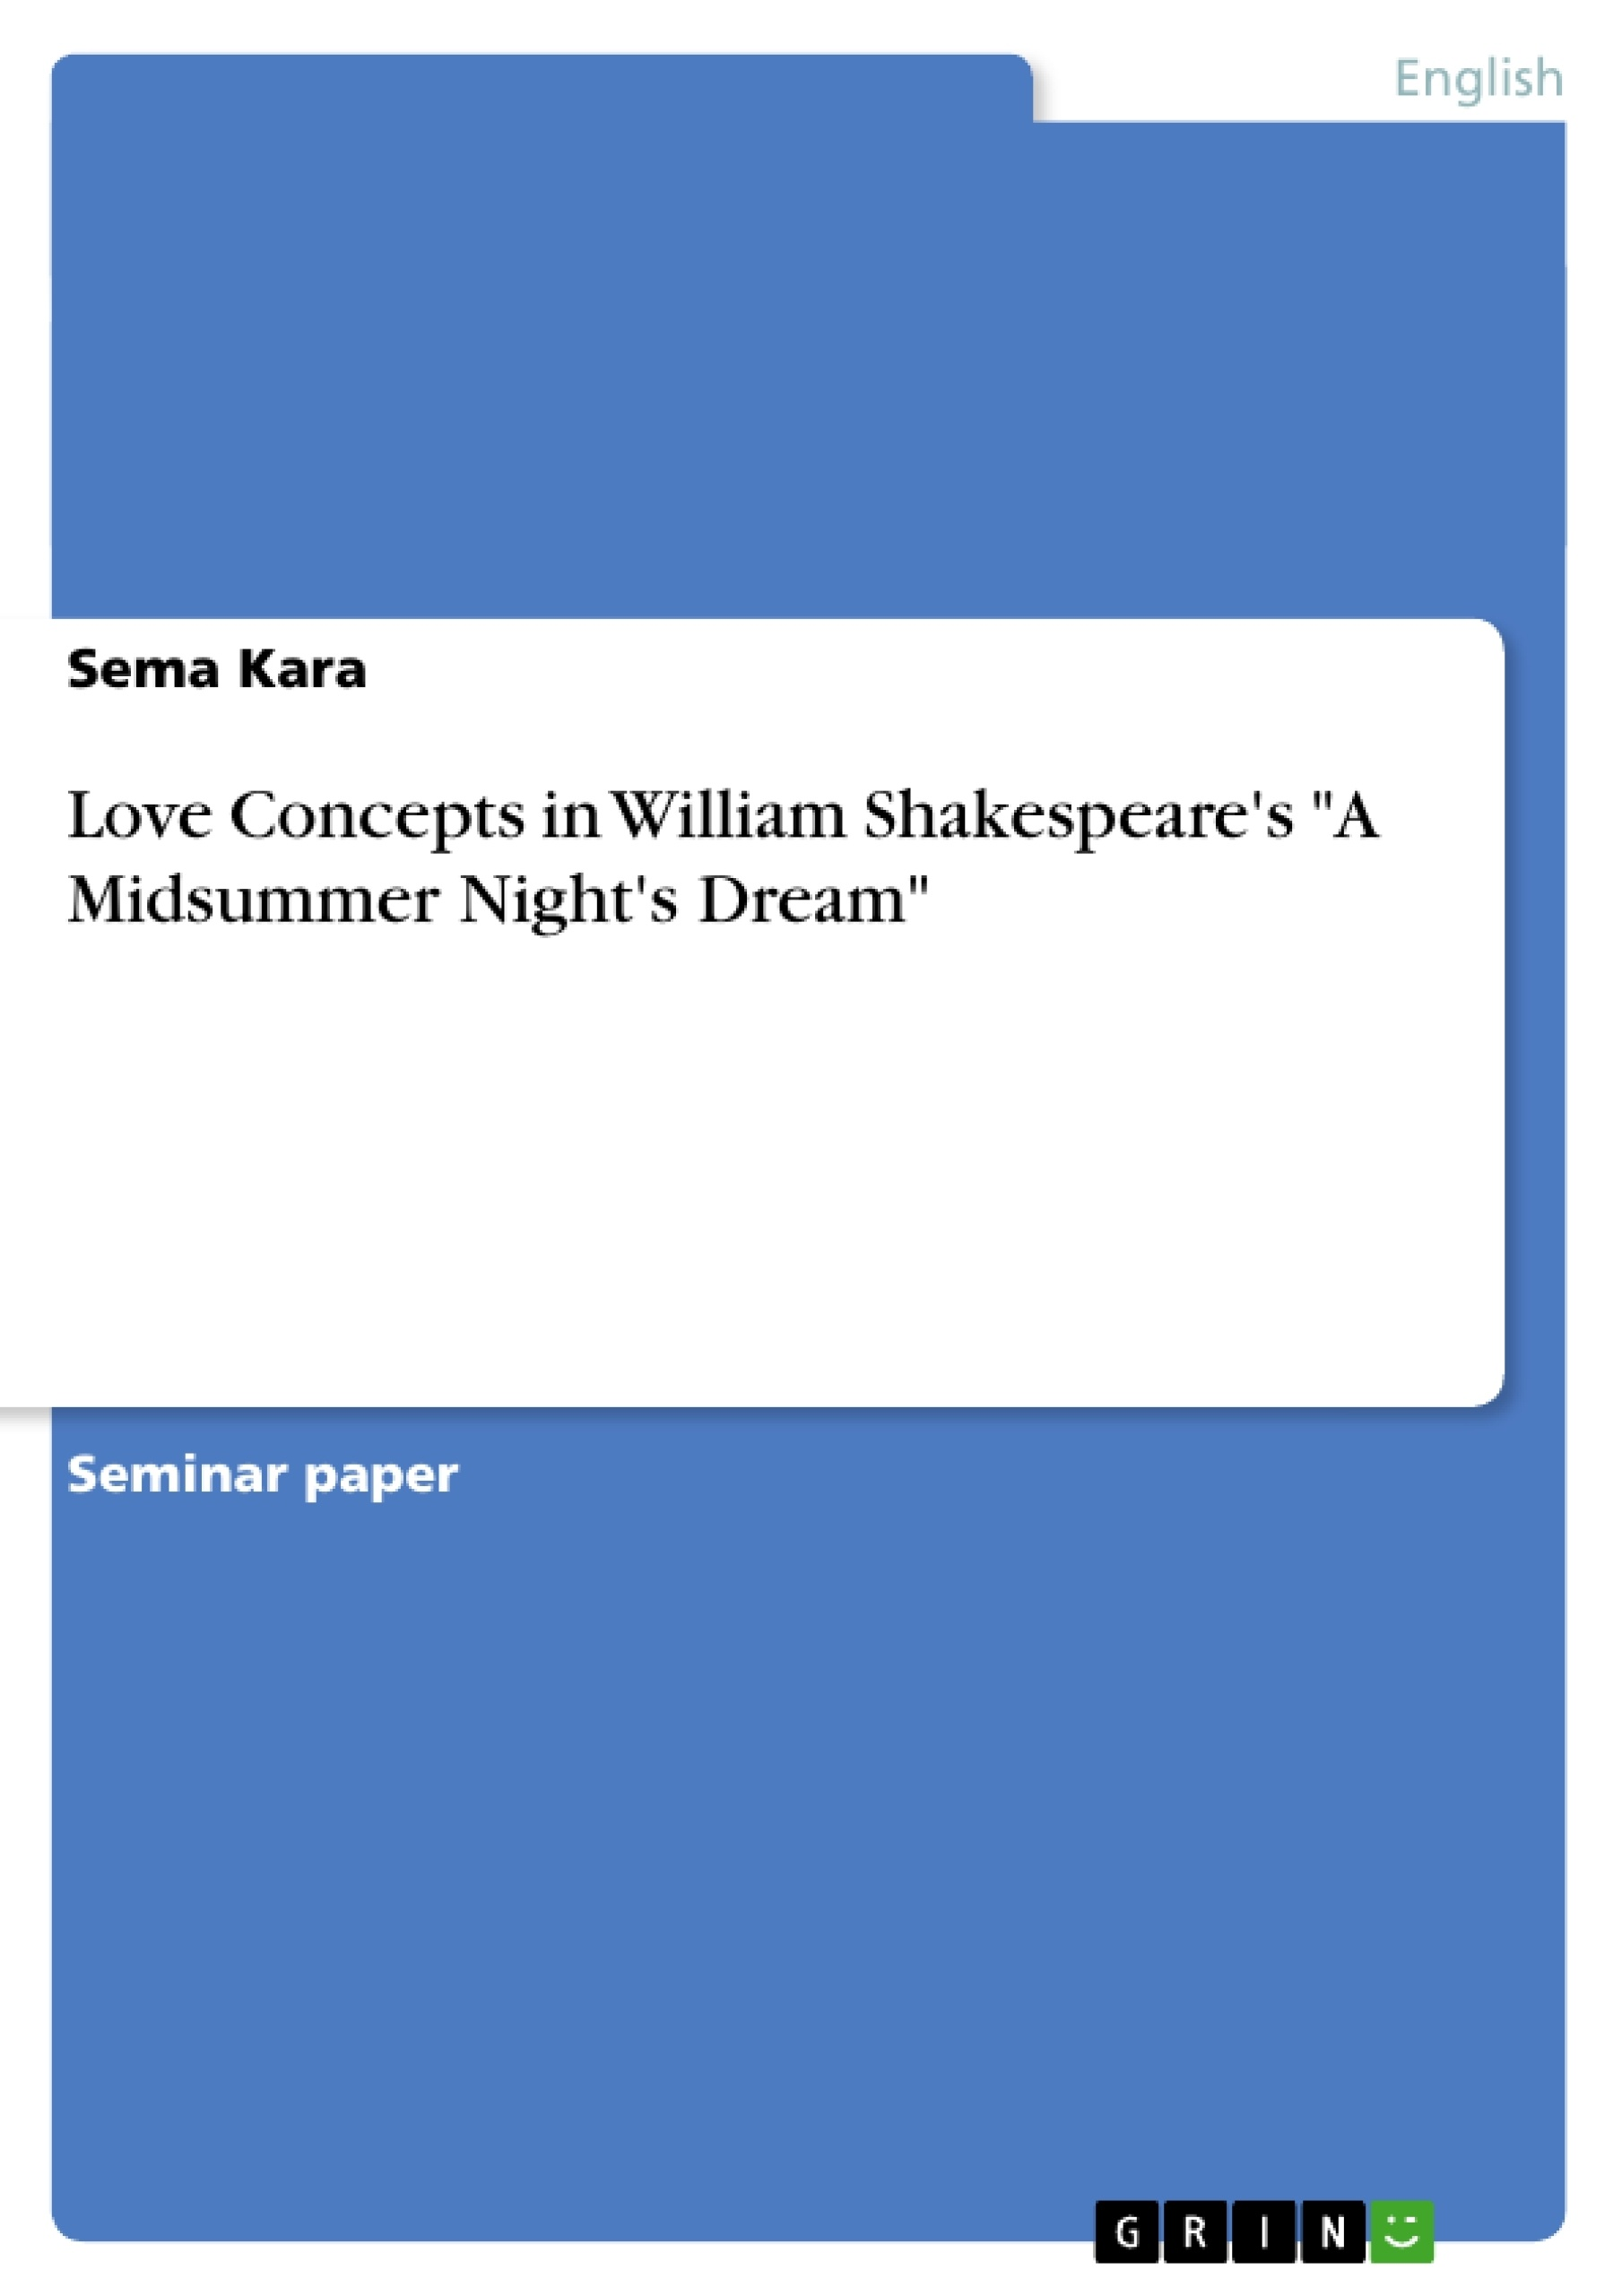 love concepts in william shakespeare s a midsummer night s dream upload your own papers earn money and win an iphone 7